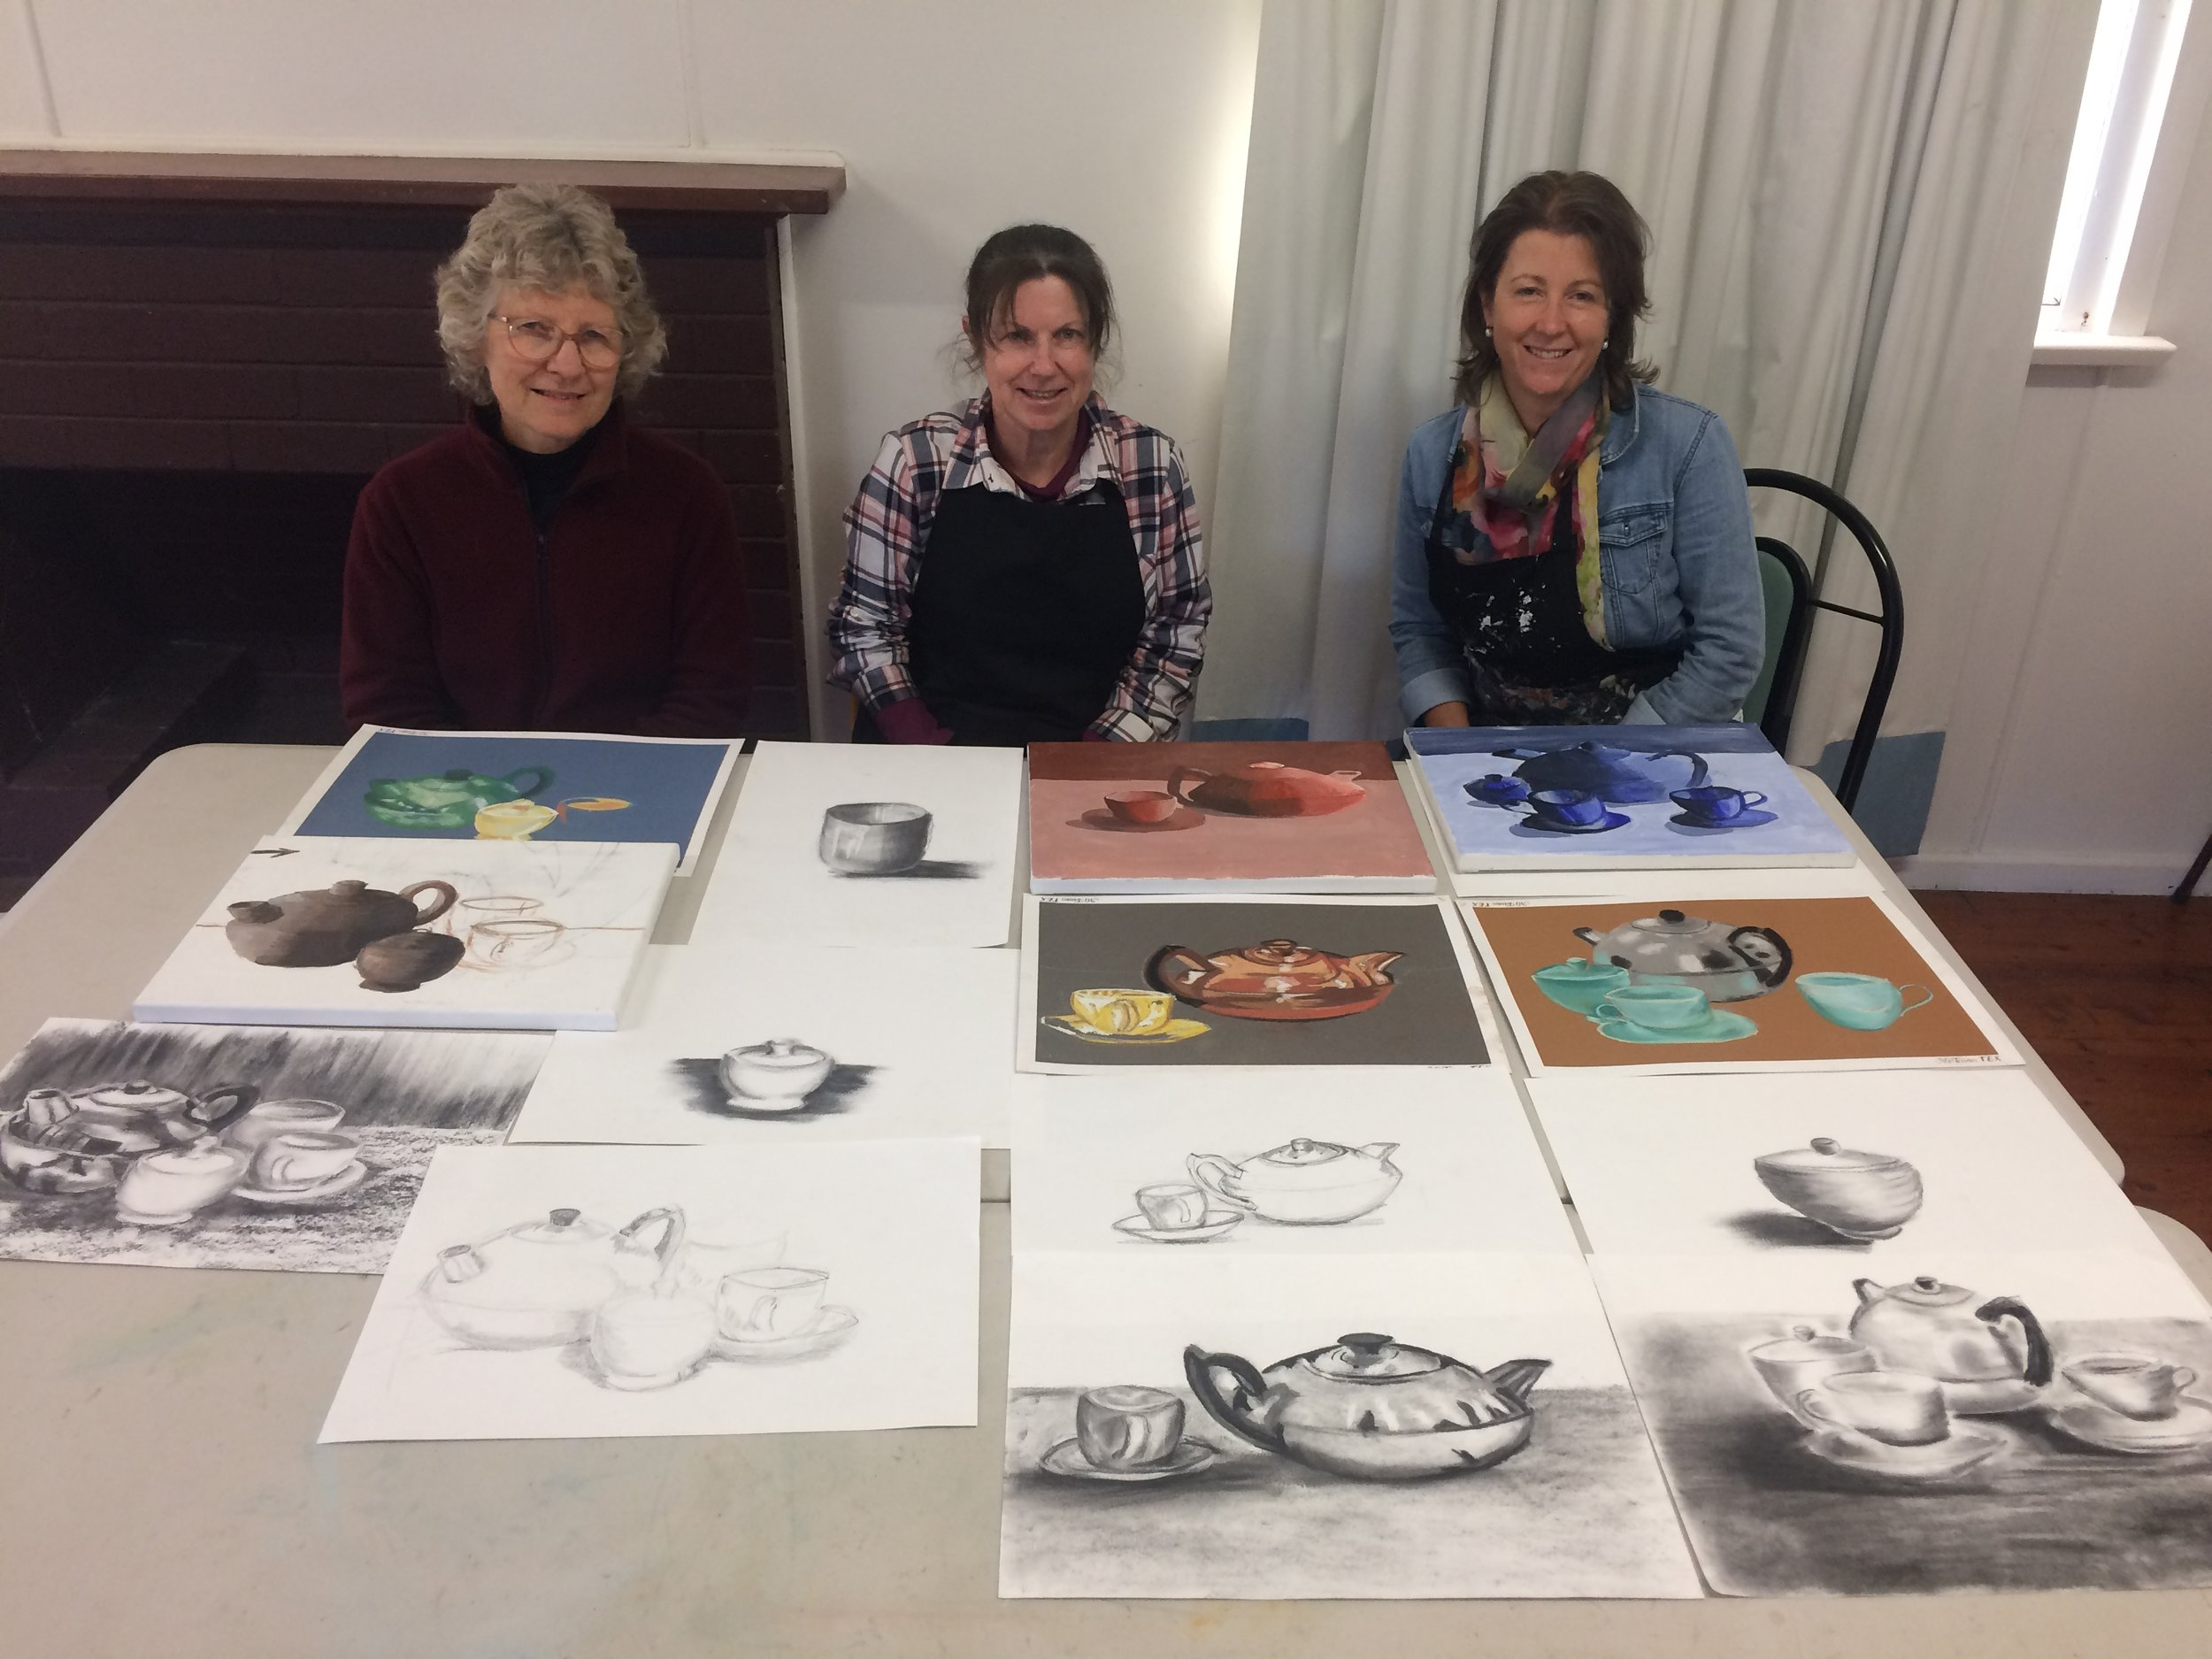 """Art Taster""Sunday 14 April 2019 - Beginner and intermediate artists will be guided through an exploration of various mediums.We'll have fun, explore and experiment using graphite, charcoal, pastel, acrylic paint and collage.10.00 am - 4.00 pm. Studio 3, BDAS studios, 1 Short St., Bowral.$180. All materials are supplied.All you need to bring is yourself and your lunch.For more information and to enrol email traceymillermail@gmail.com"